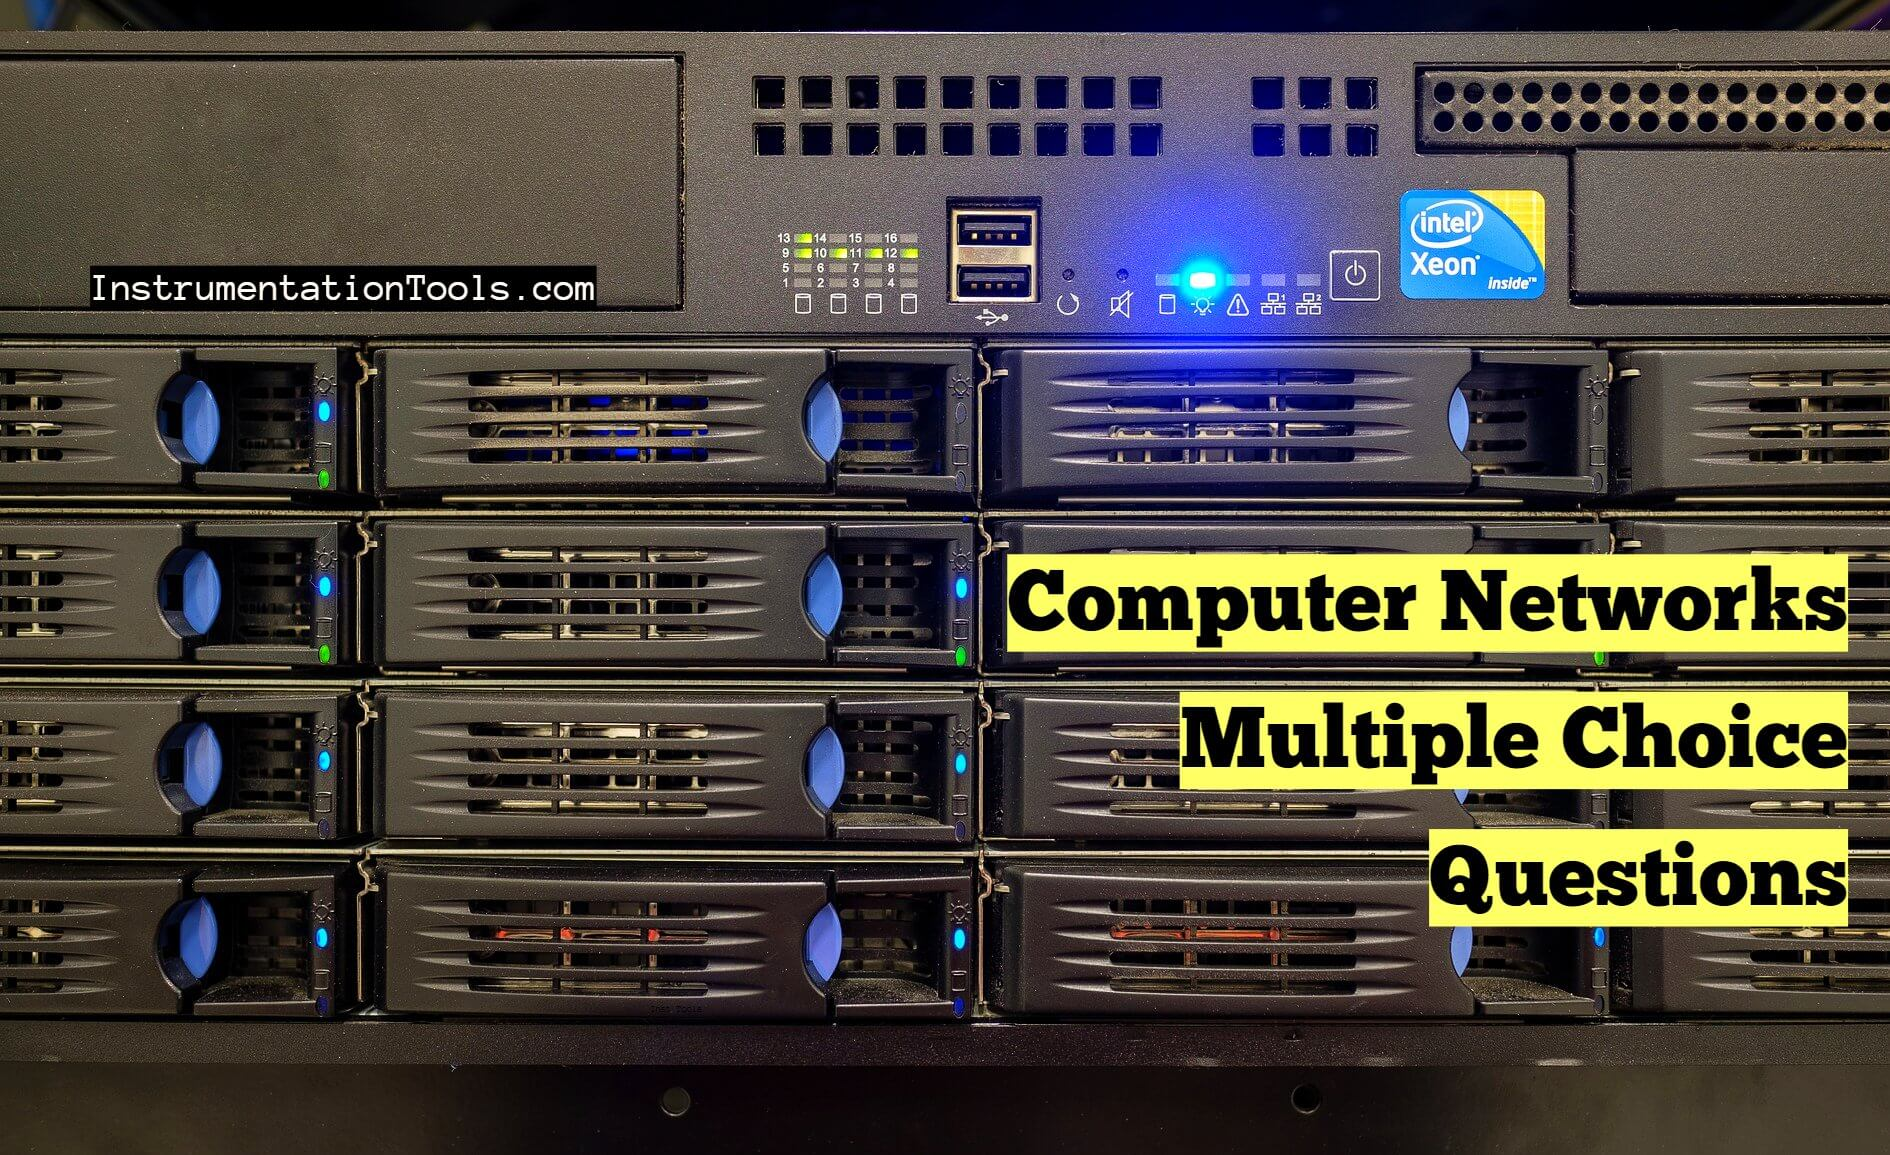 Computer Networks Multiple Choice Questions